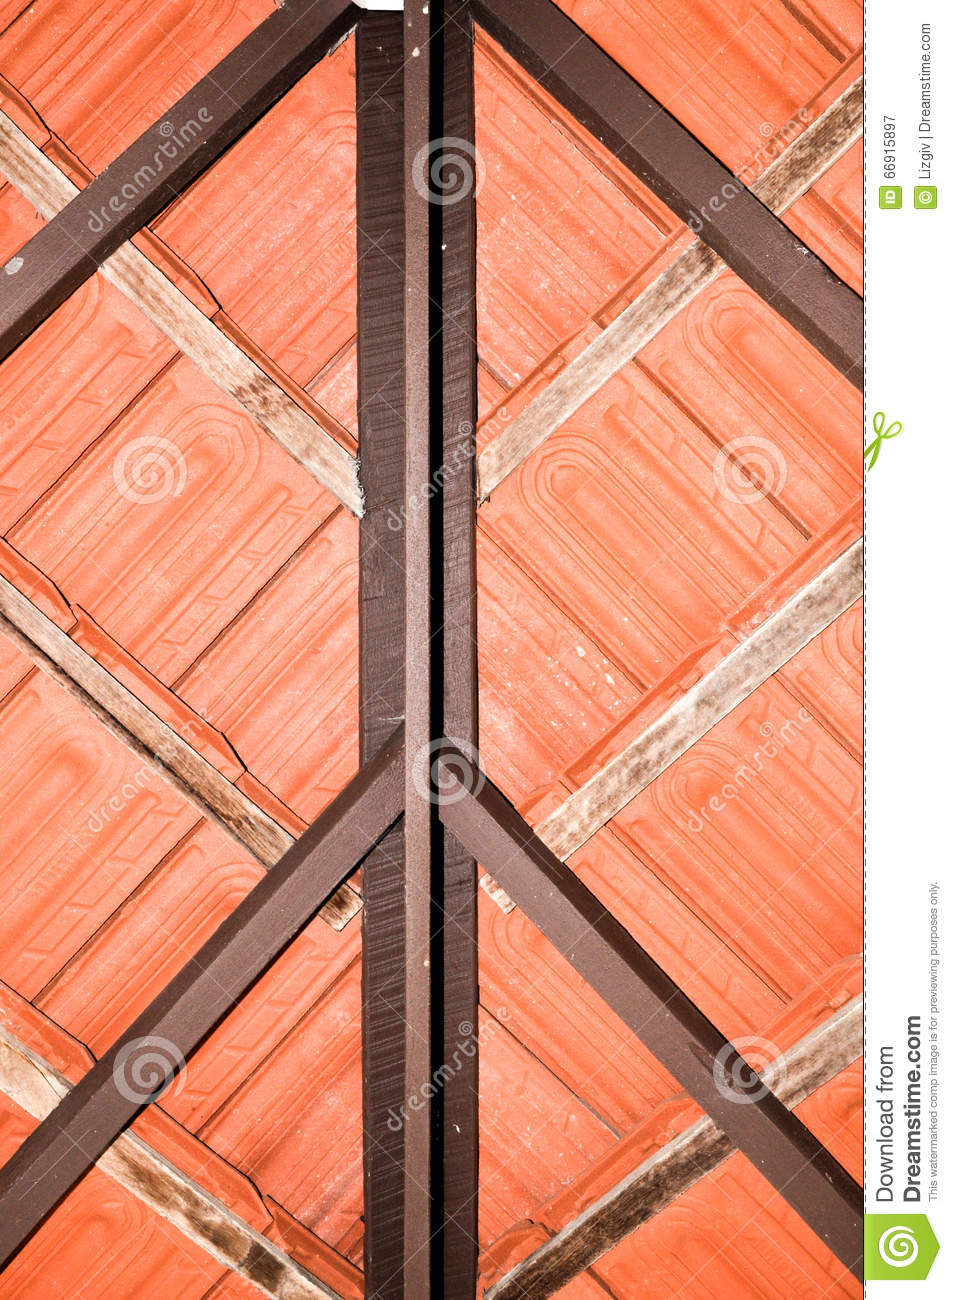 Terracotta Roof Tiles Stock Image Image Of Ceramic Tiles